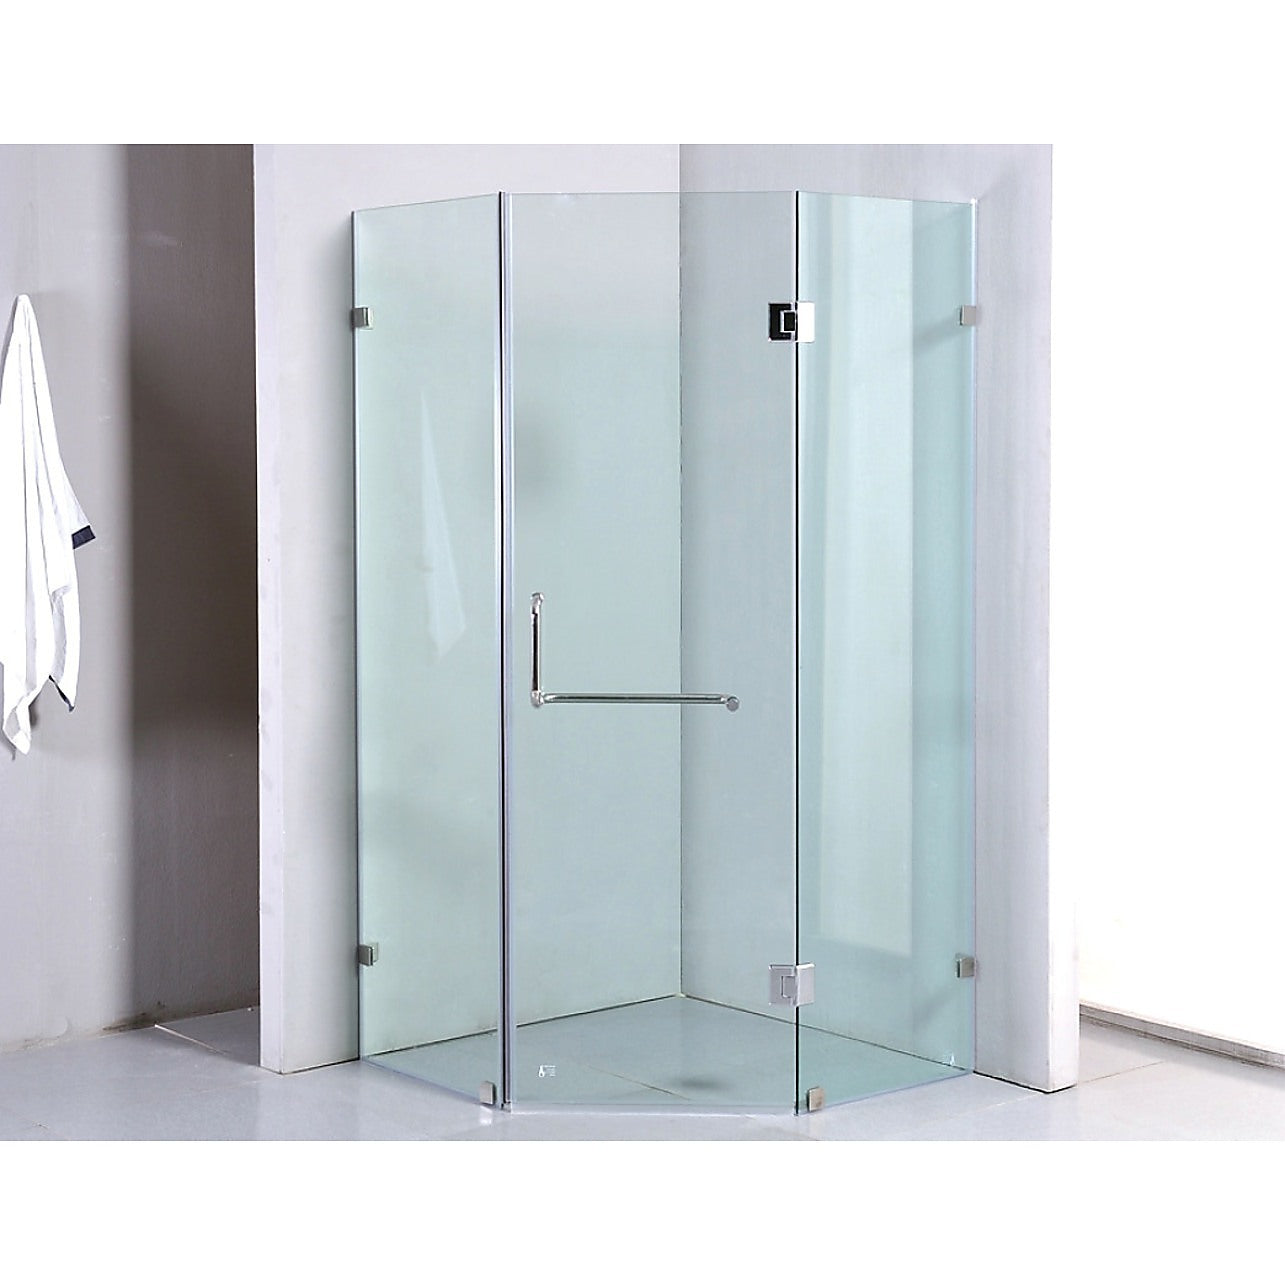 900 X 900mm Frameless 10mm Glass Shower Screen By Della Francesca Chrome Hinges Brackets And Round Handle